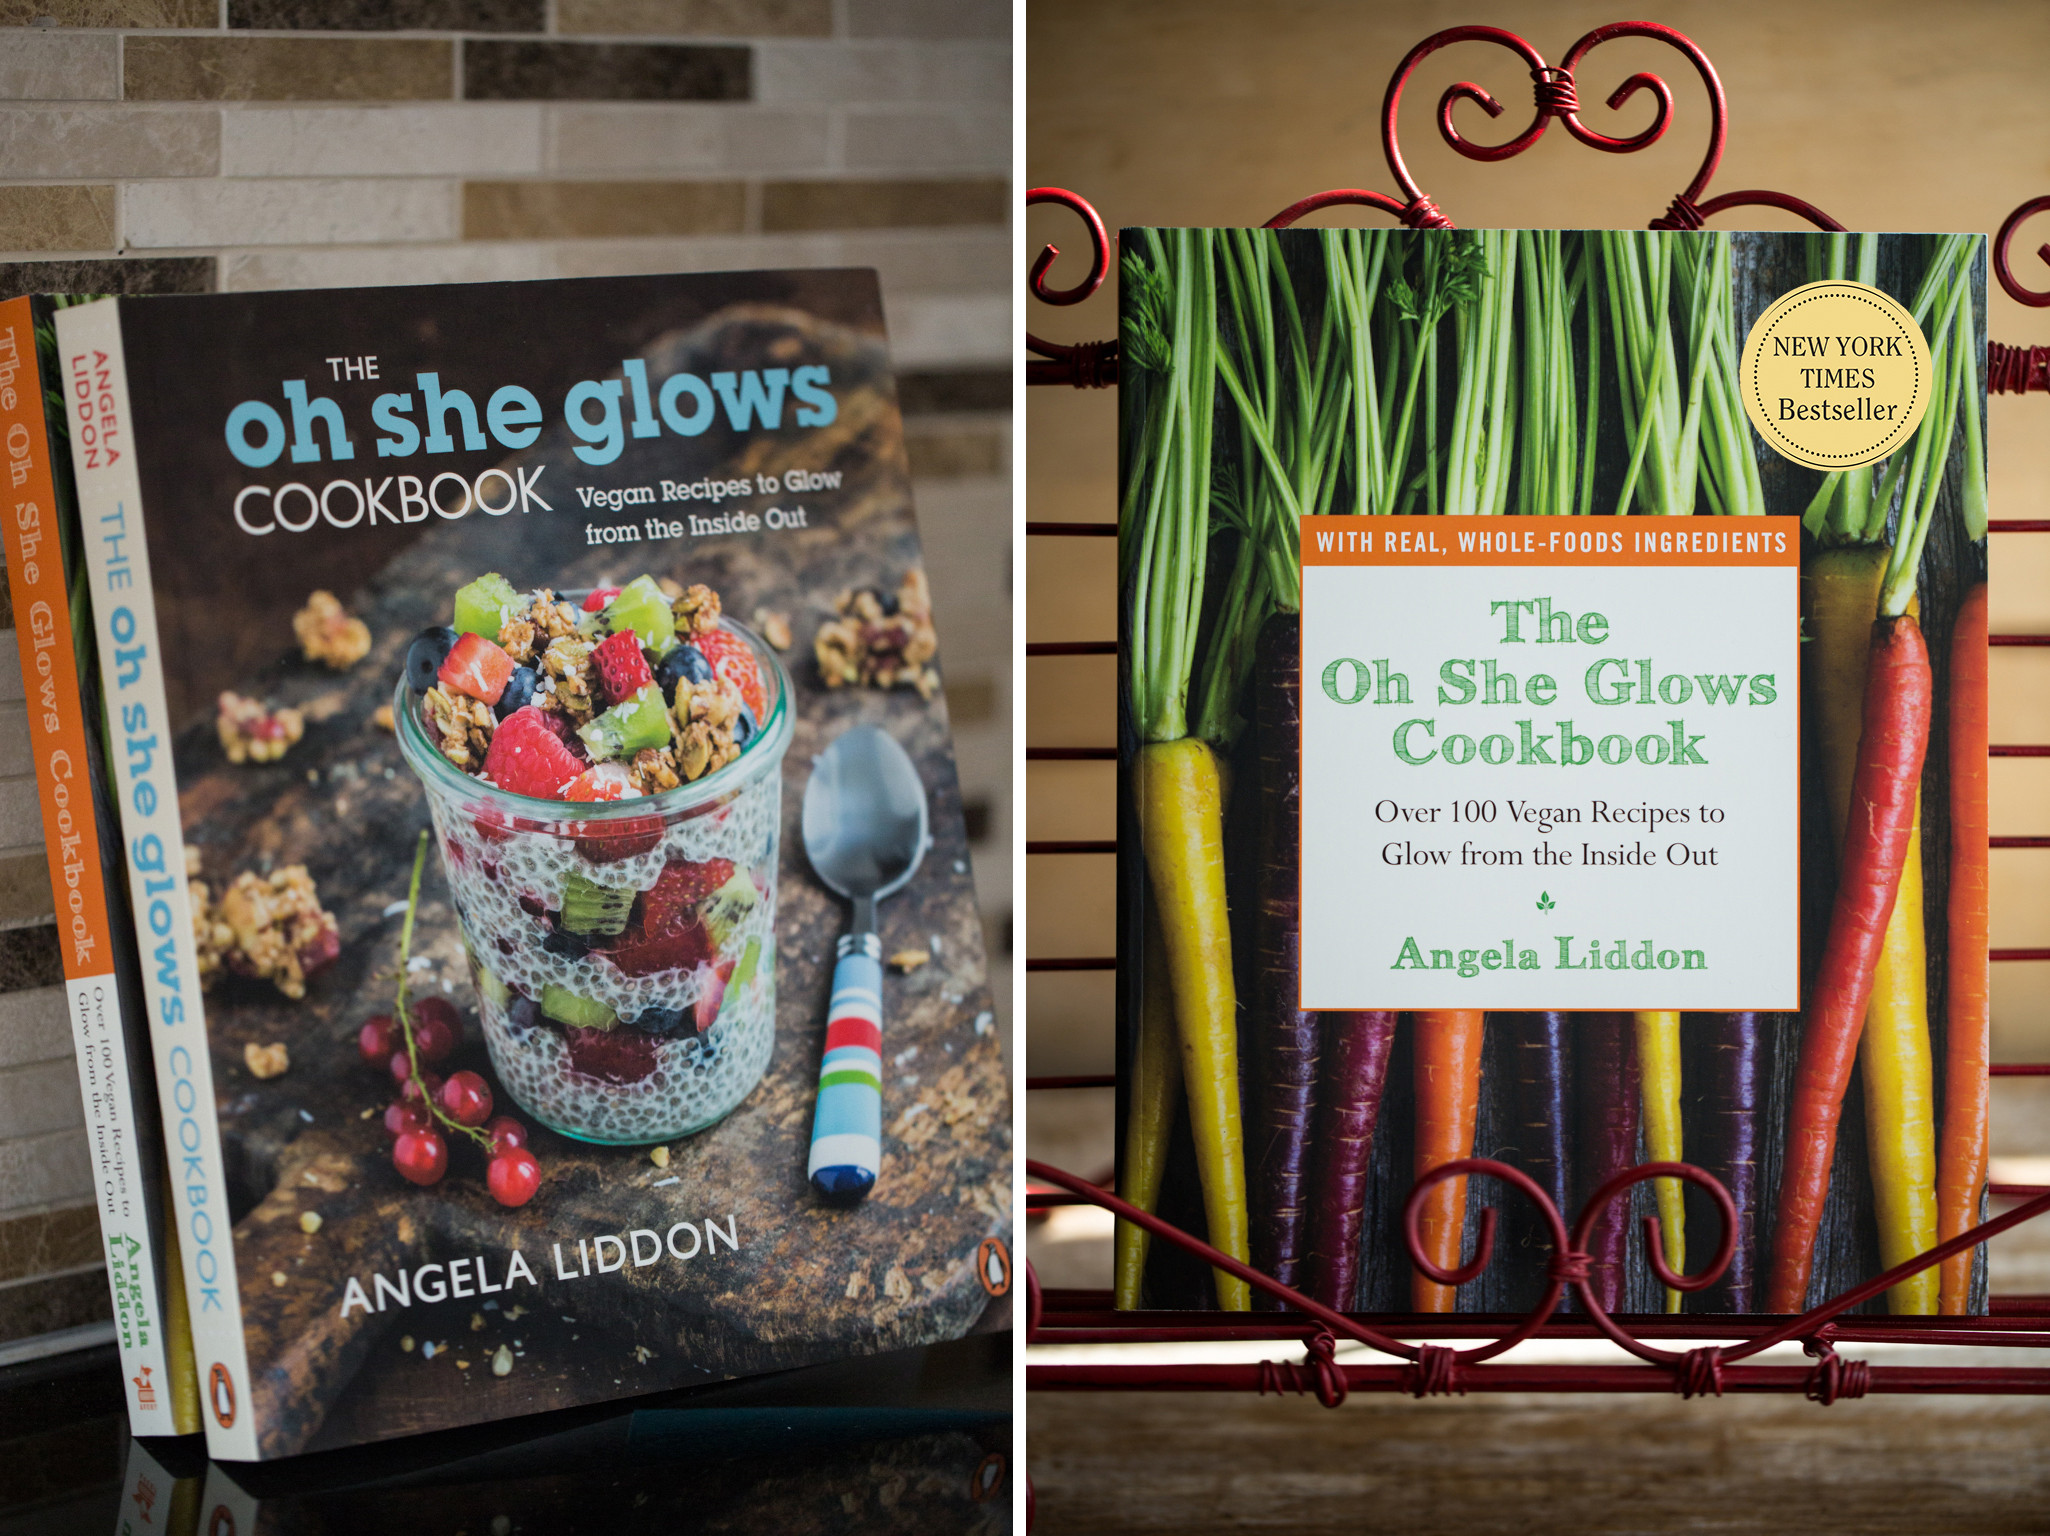 The Oh She Glows Cookbook: Over 100 Vegan Recipes To Glow From The Inside Out  The Book — Oh She Glows